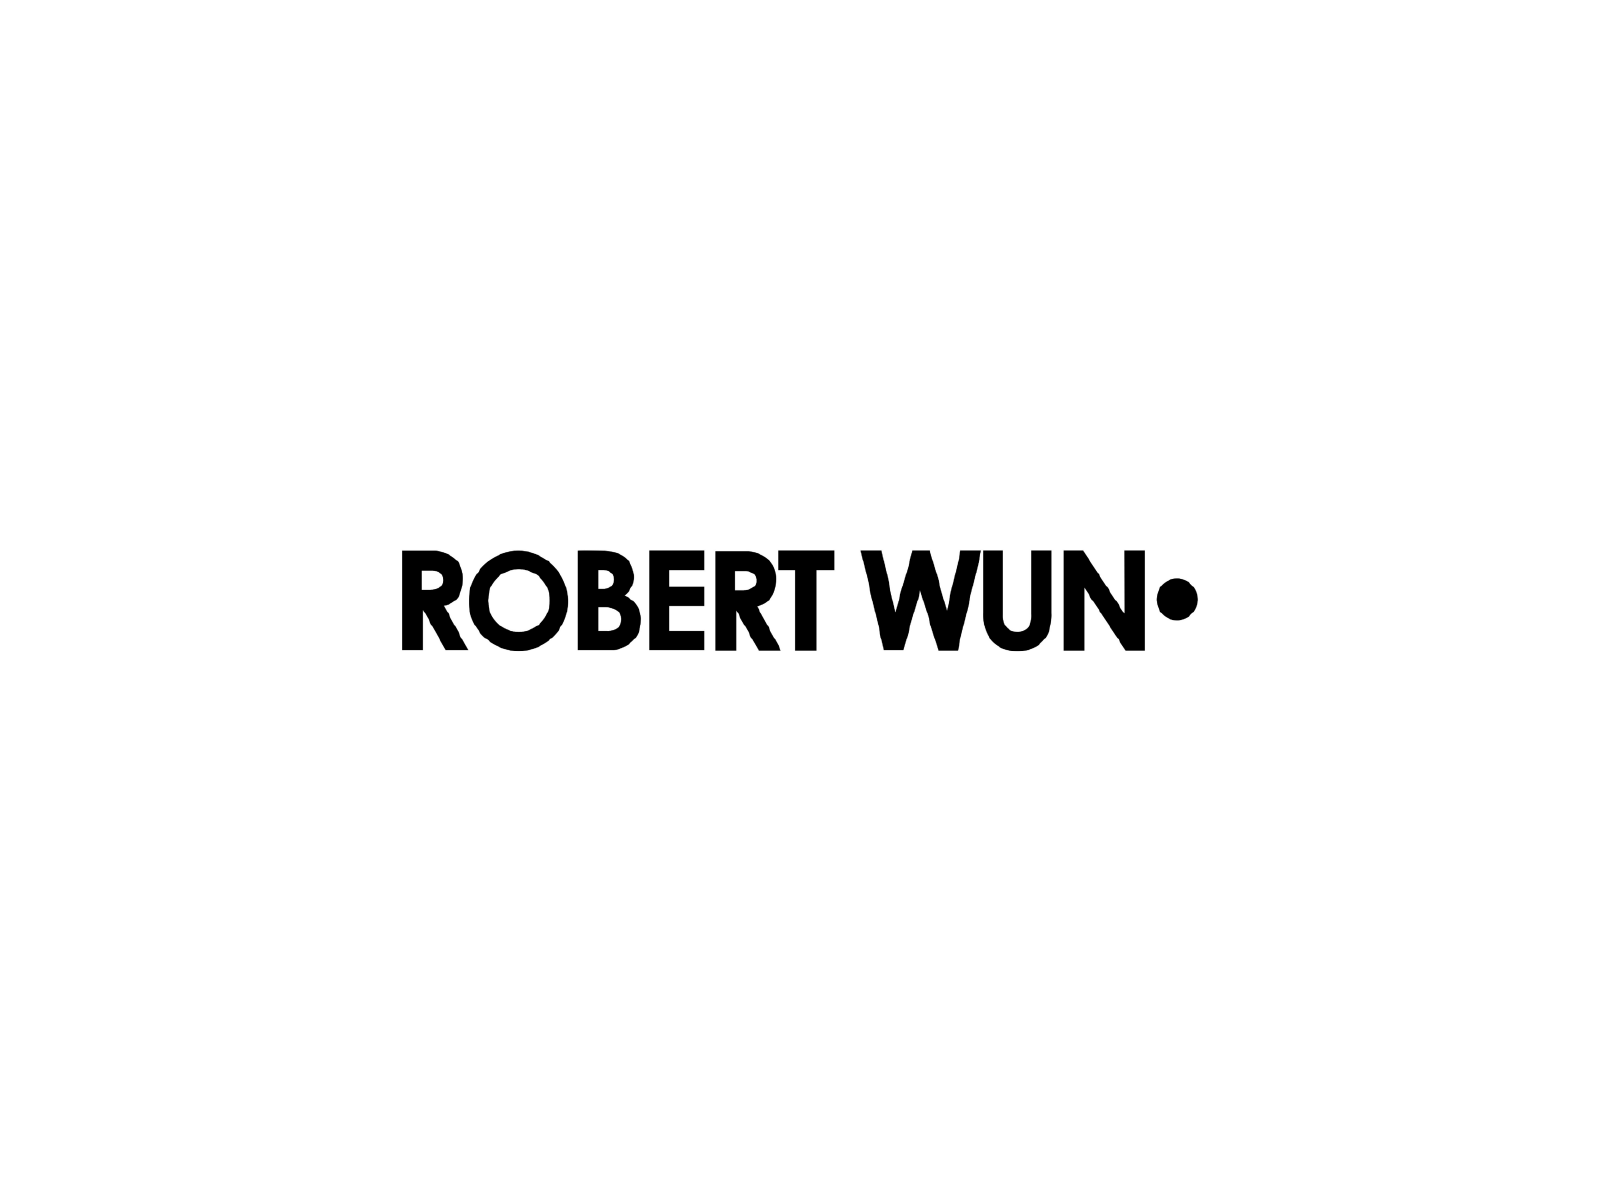 image of Robert Wun